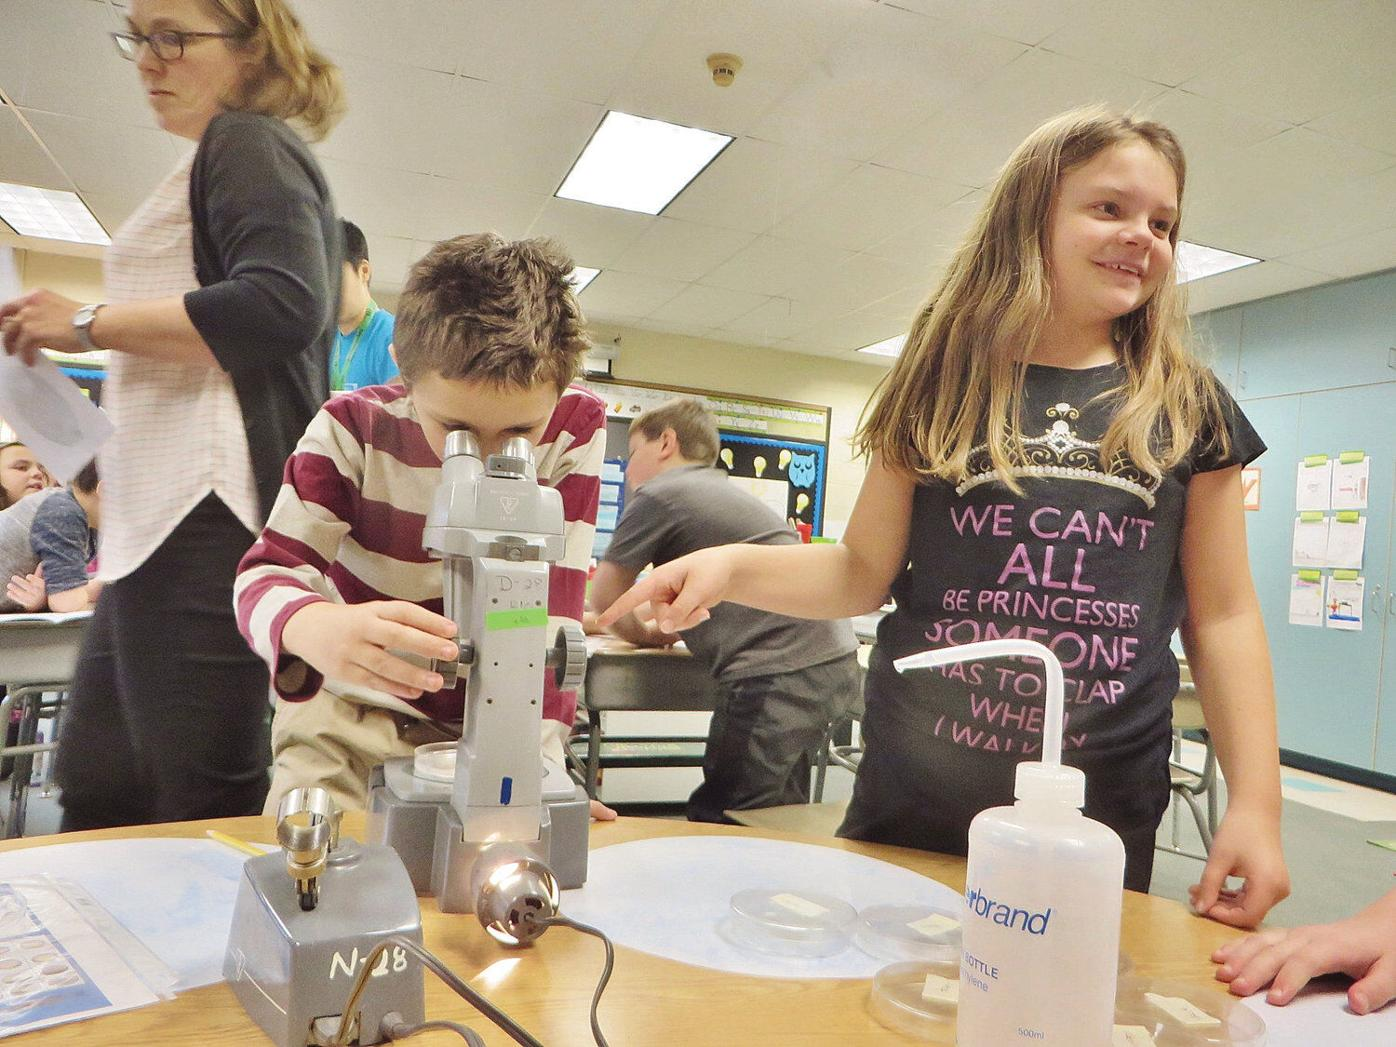 A splashing success, 'BioEYES' live fish science program to expand in the Berkshires